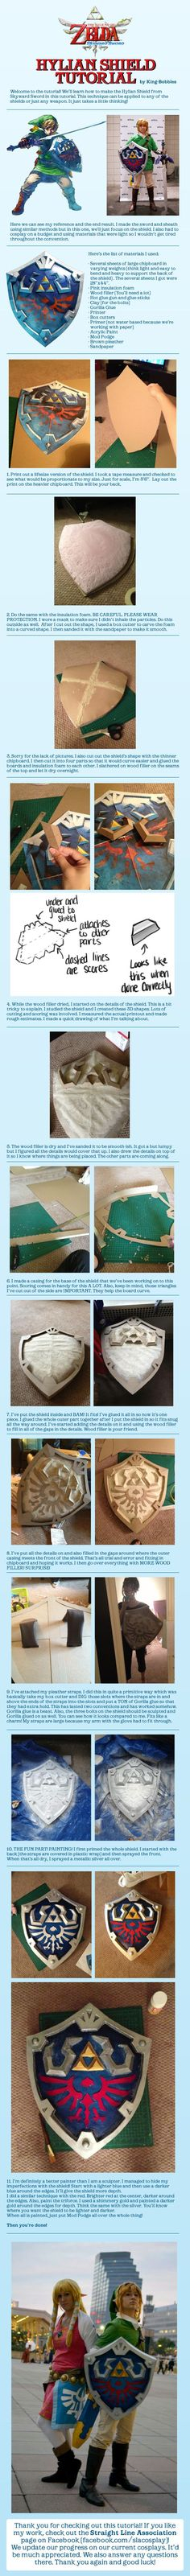 The Legend of Zelda Hylian Shield Cosplay Tutorial by http://King-Bobbles.deviantart.com on @deviantART